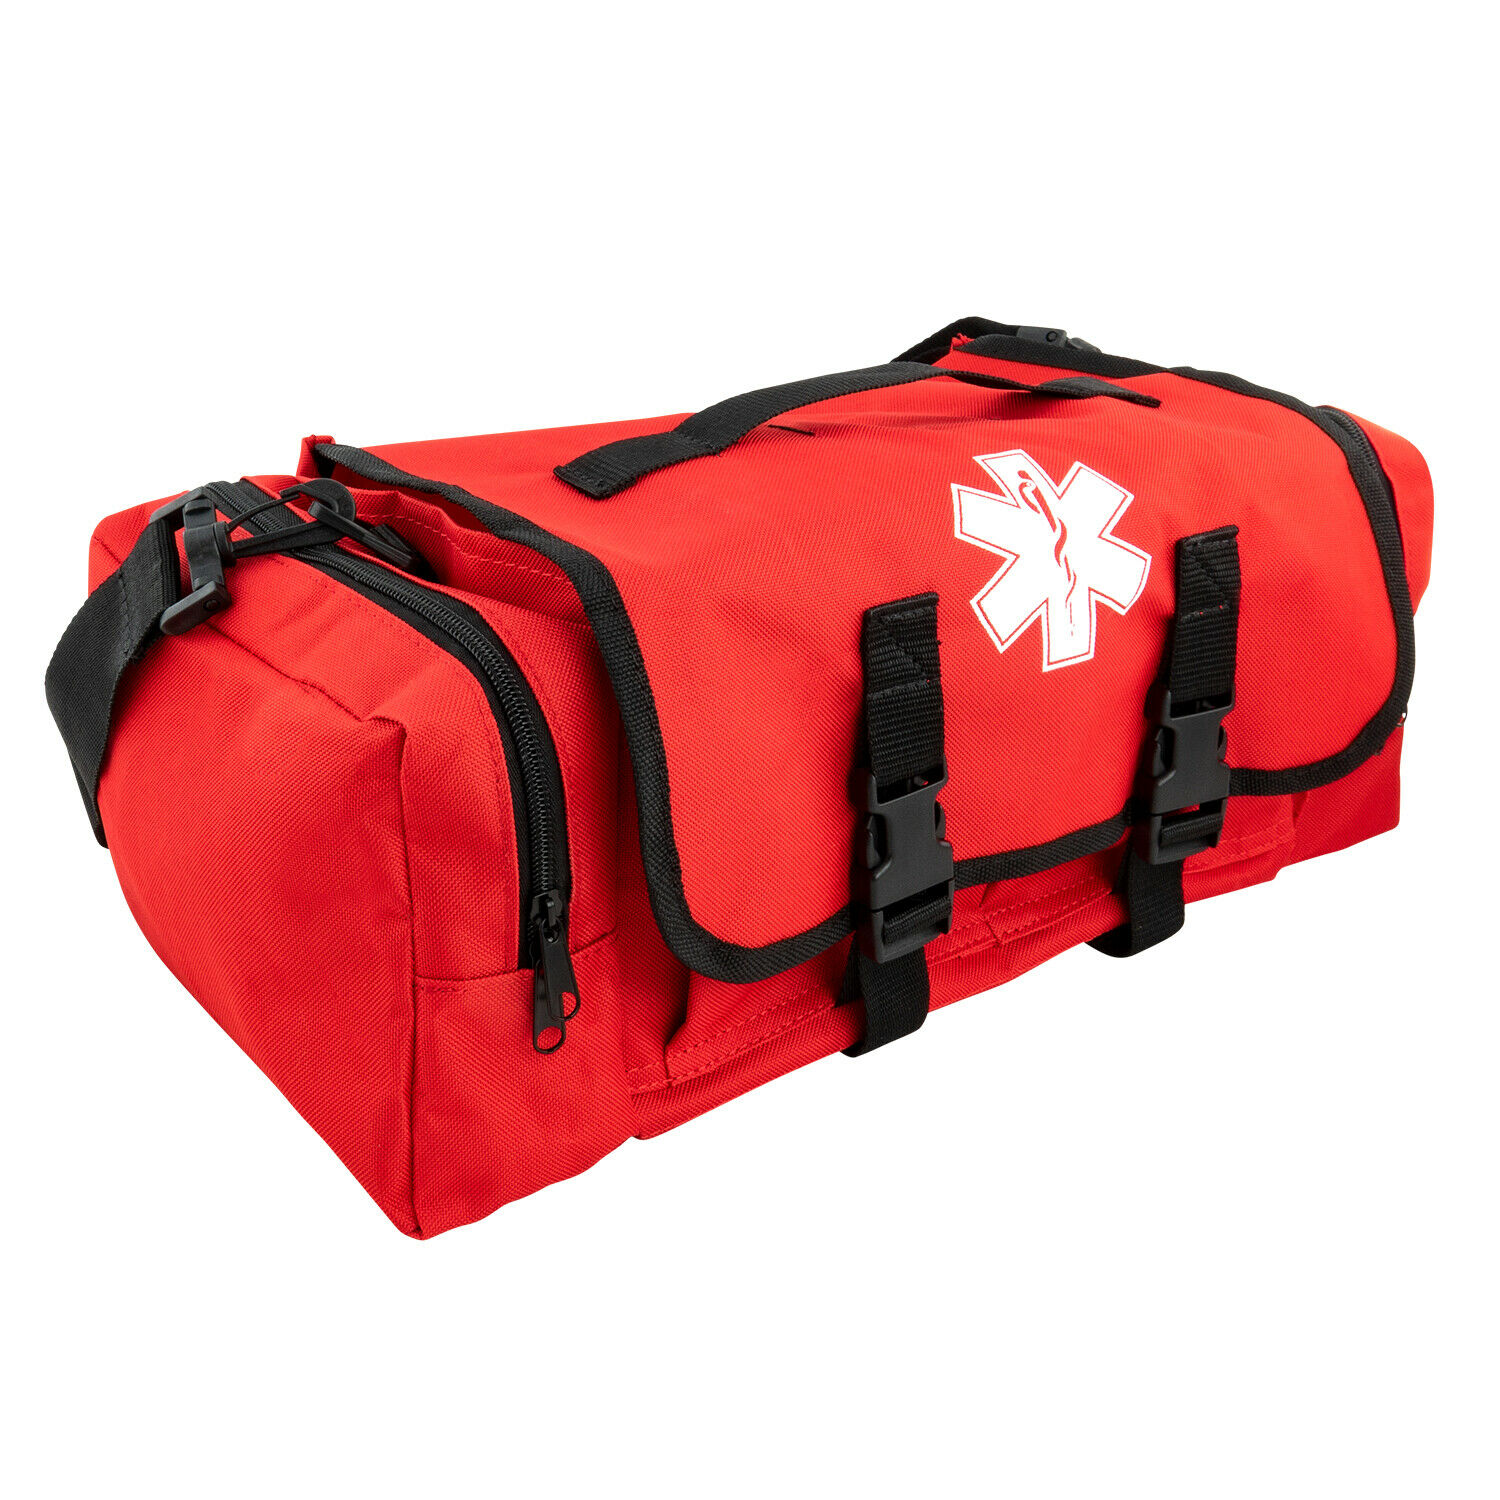 Best NEW LINE2DESIGN FIRST AID BAG - MEDICAL SUPPLIES TRAUMA FIRST RESPONDER BAG - RED